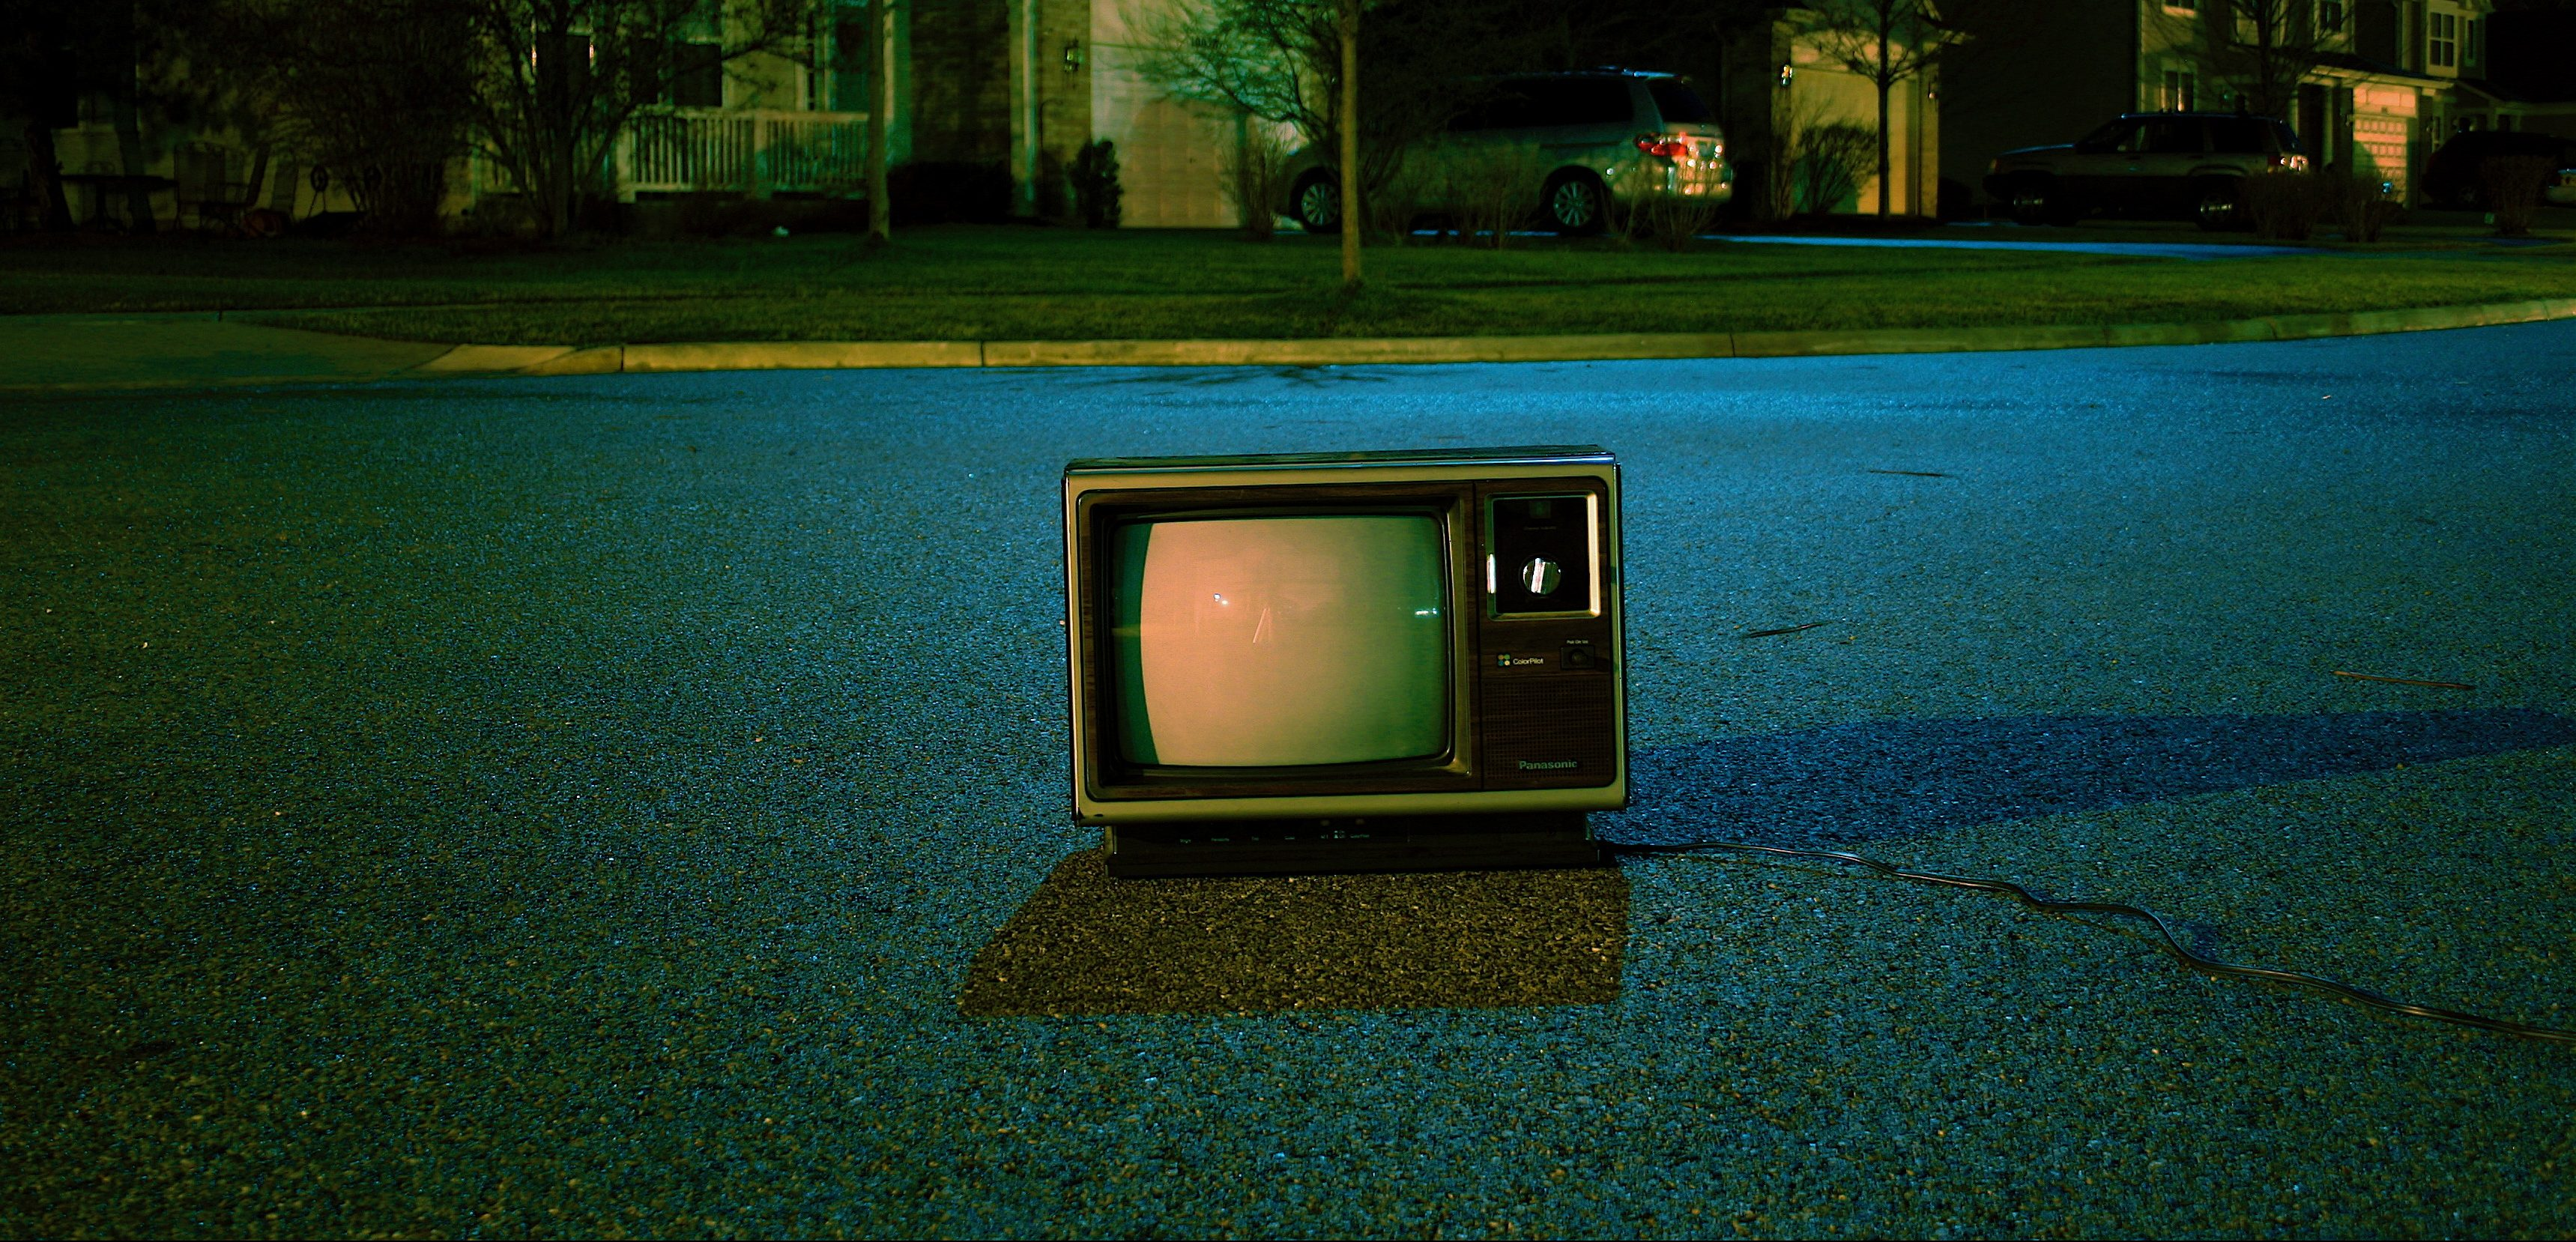 A Brief Timeline of TV Commercials